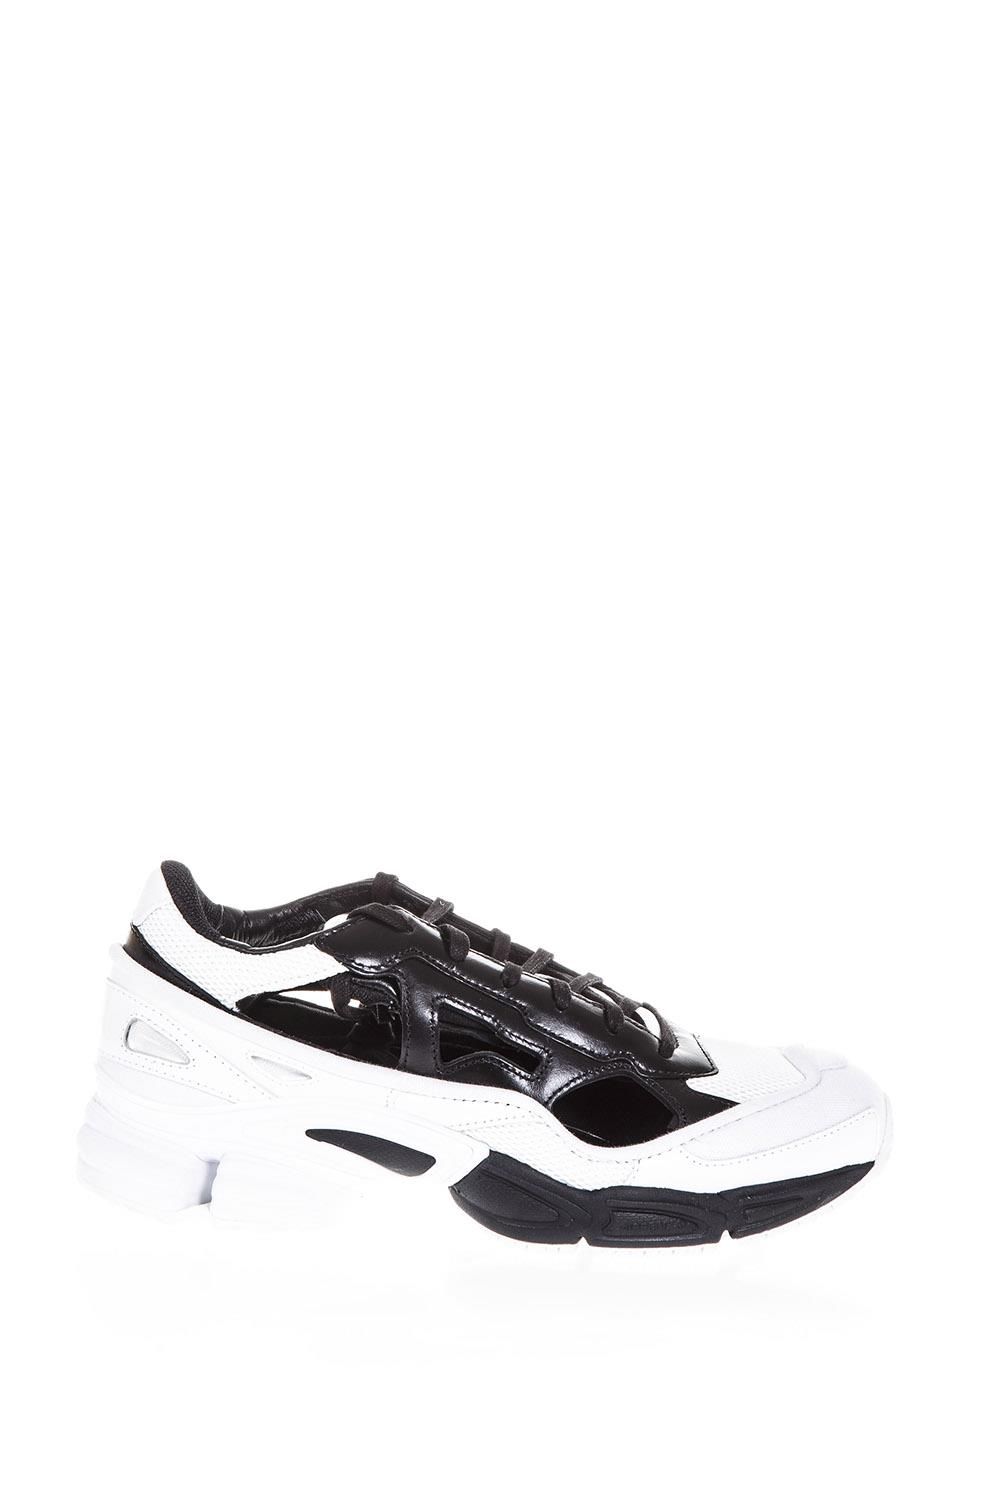 wholesale dealer 5d7f3 f162f REPLICANT OZWEEGO BLACK & WHITE SNEAKERS BY RAF SIMONSSS 2018